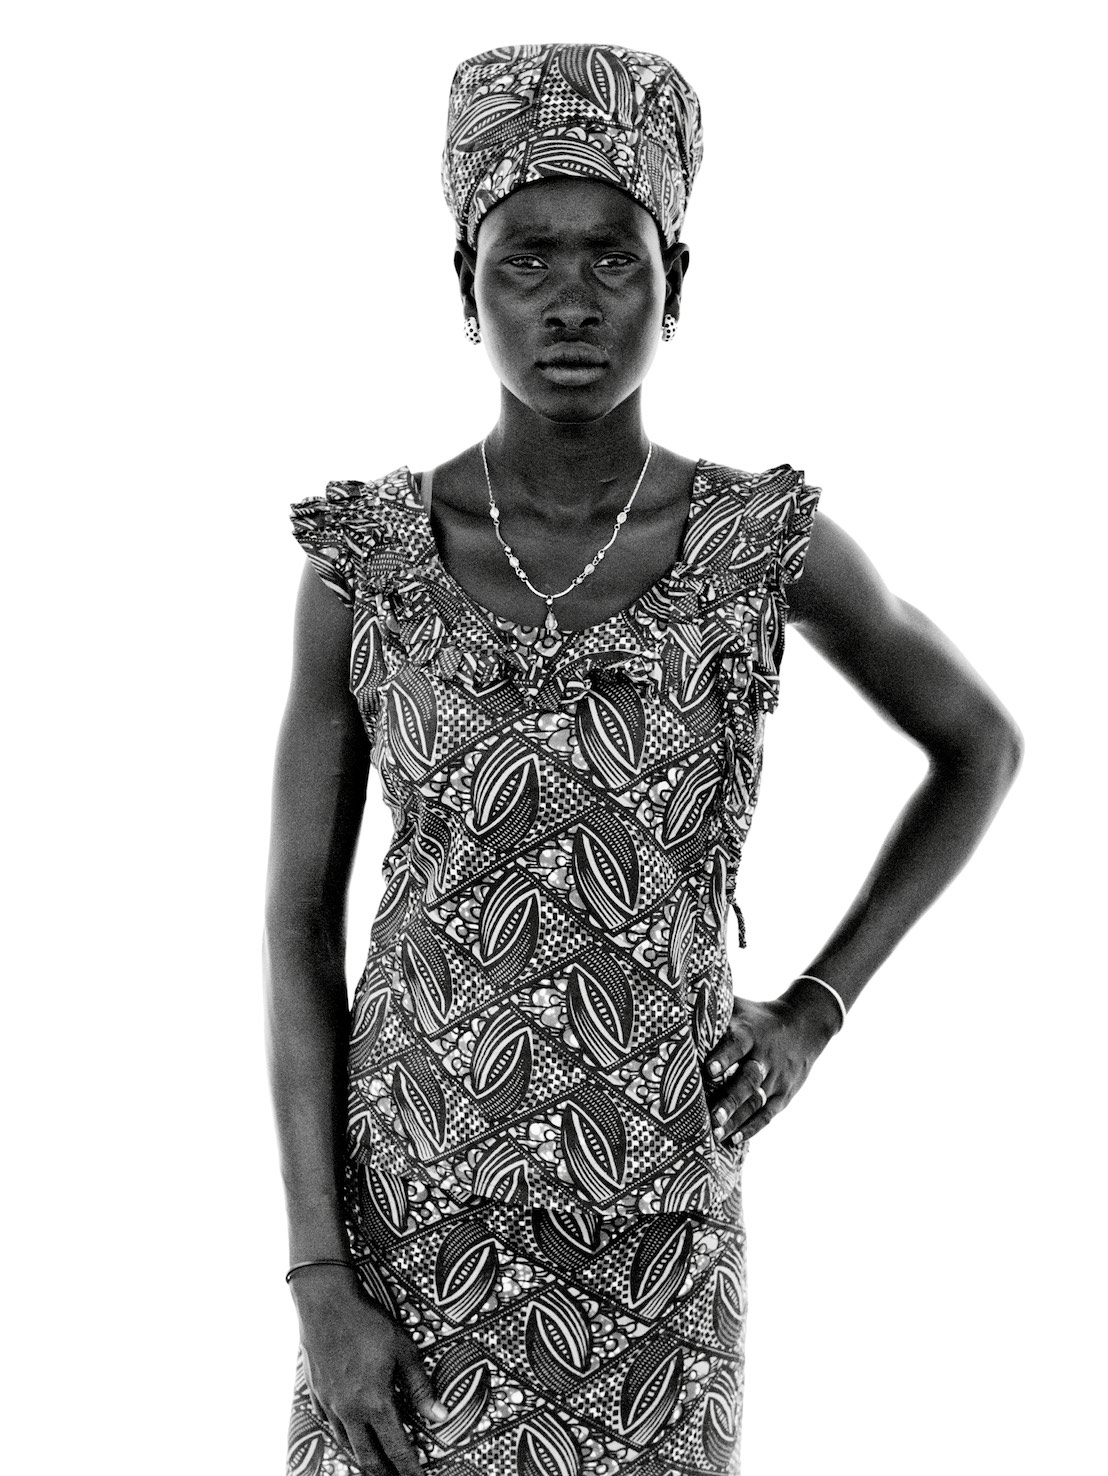 Nyanchan was calling her sister. She was in an internally displaced persons camp in Juba. They hadn't been in contact since 2013.